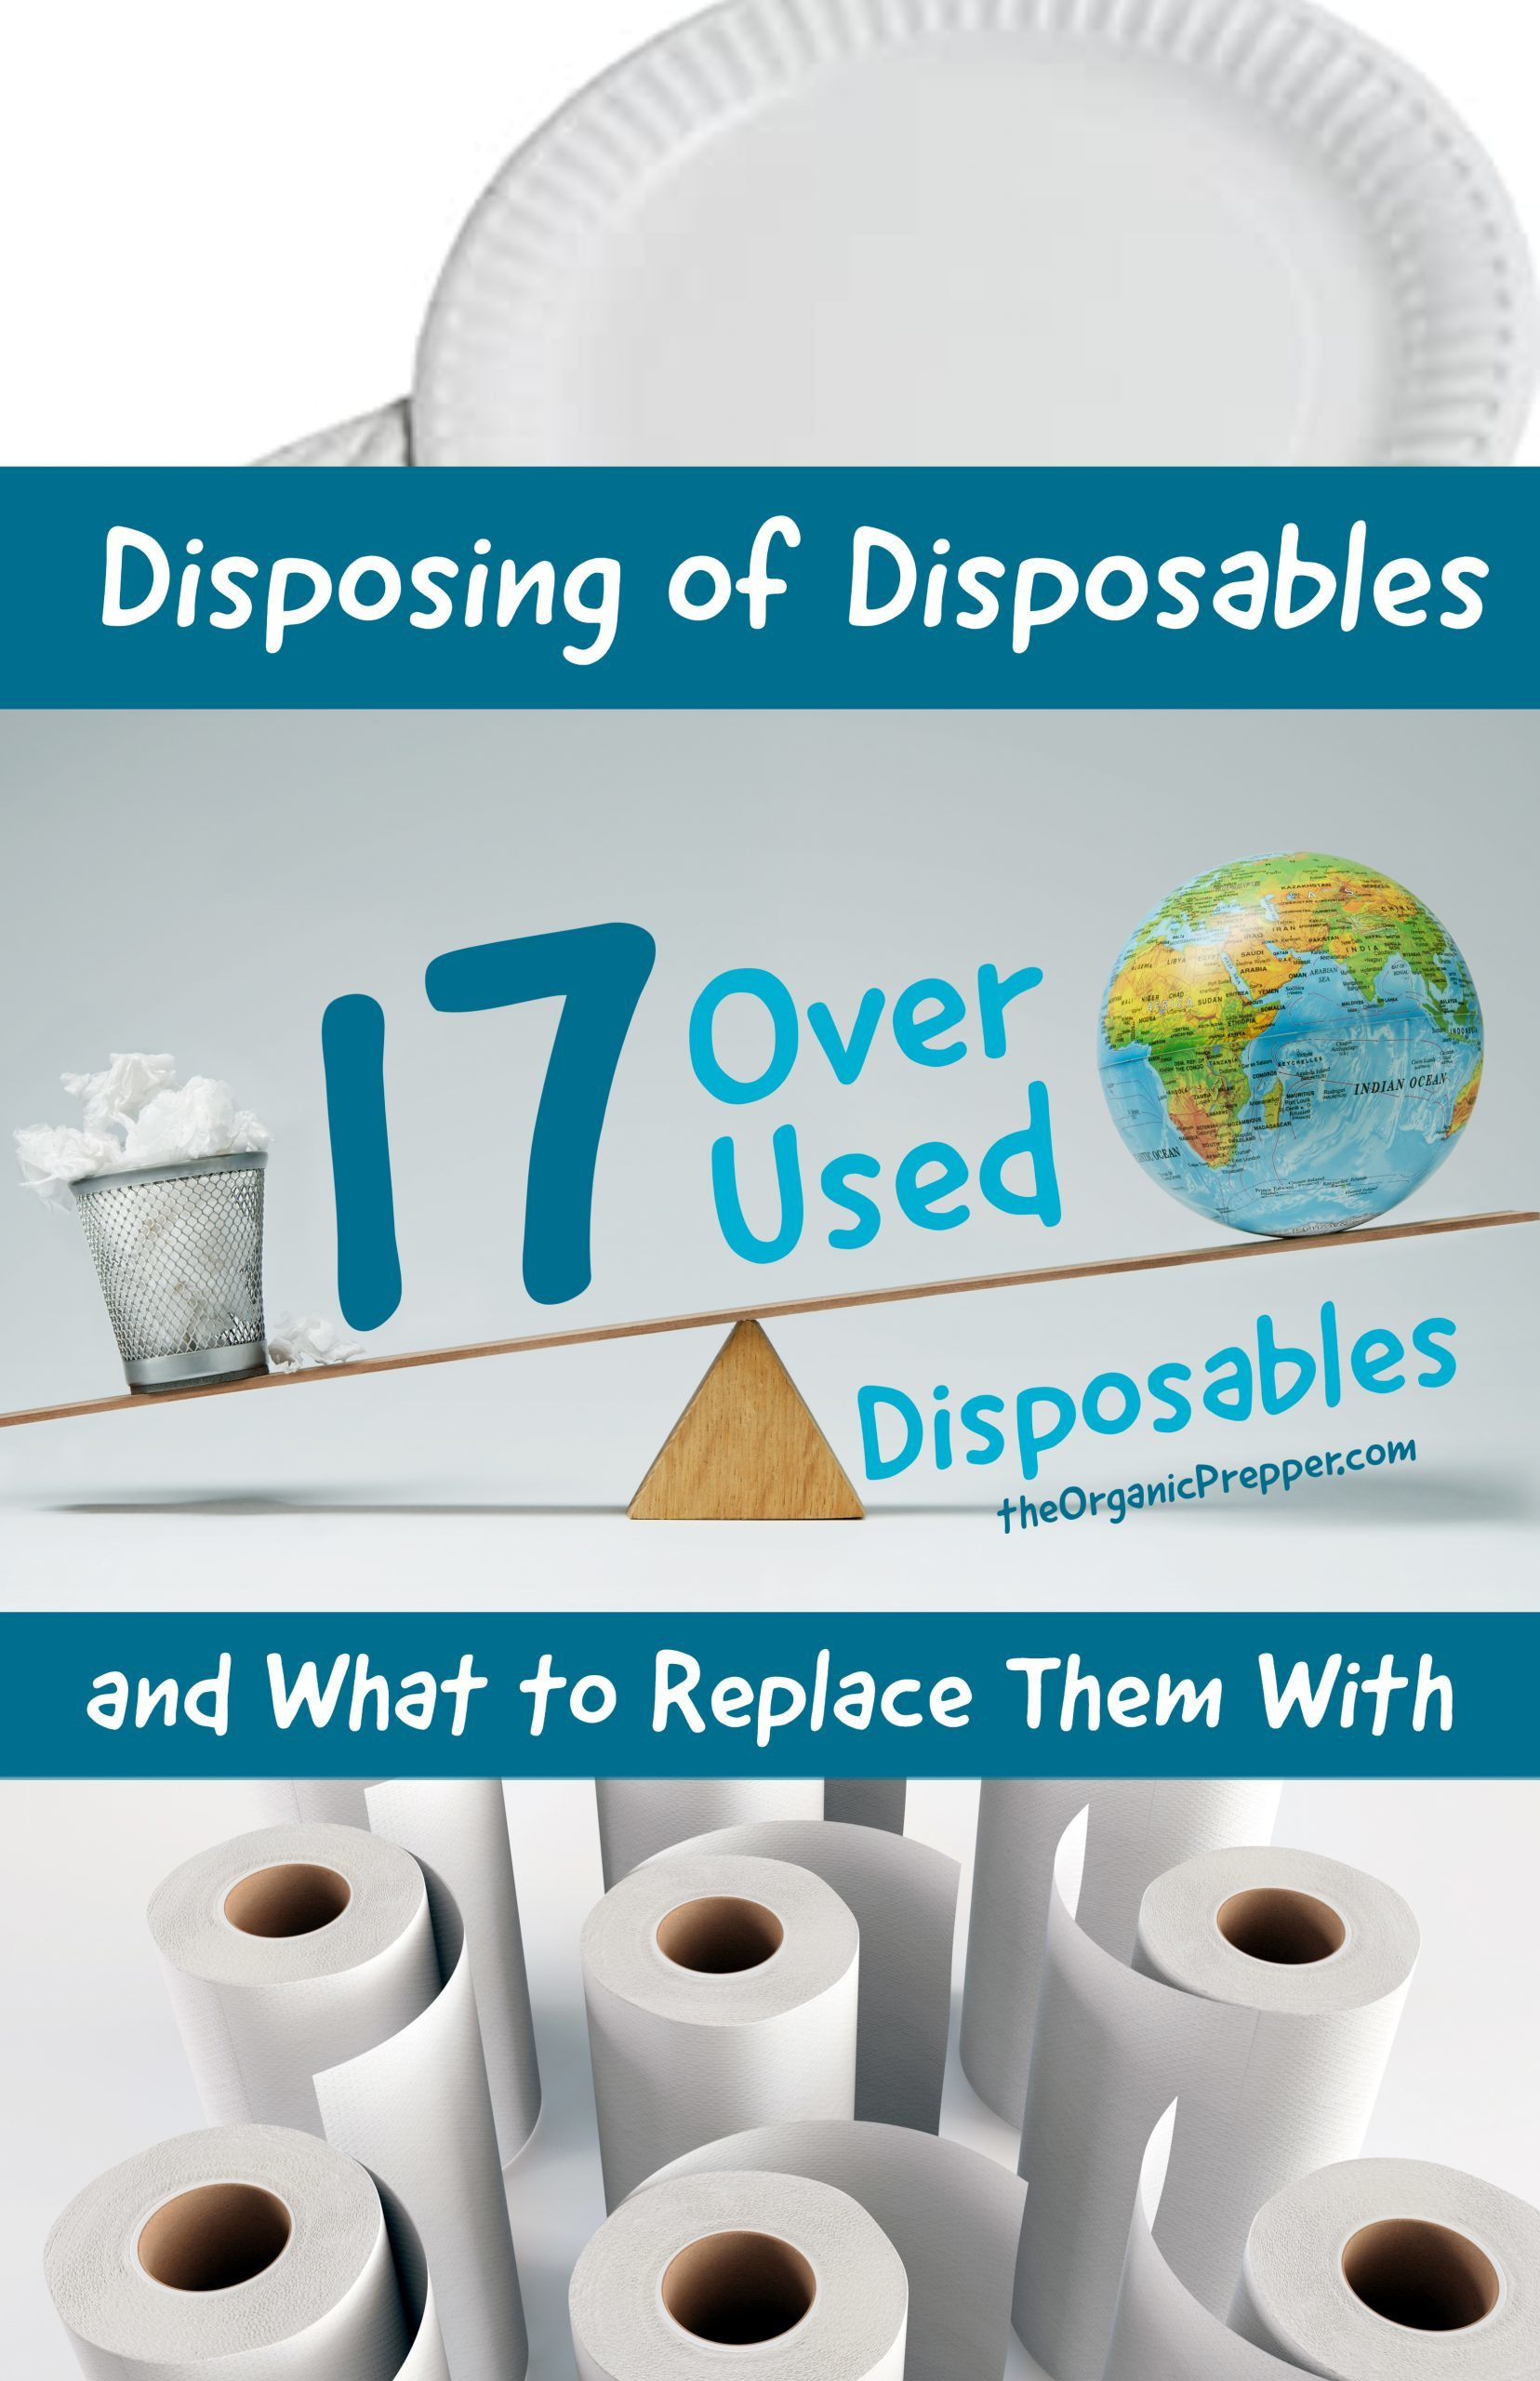 Disposing of Disposables: 17 Overused Disposable Items and What to Replace Them With